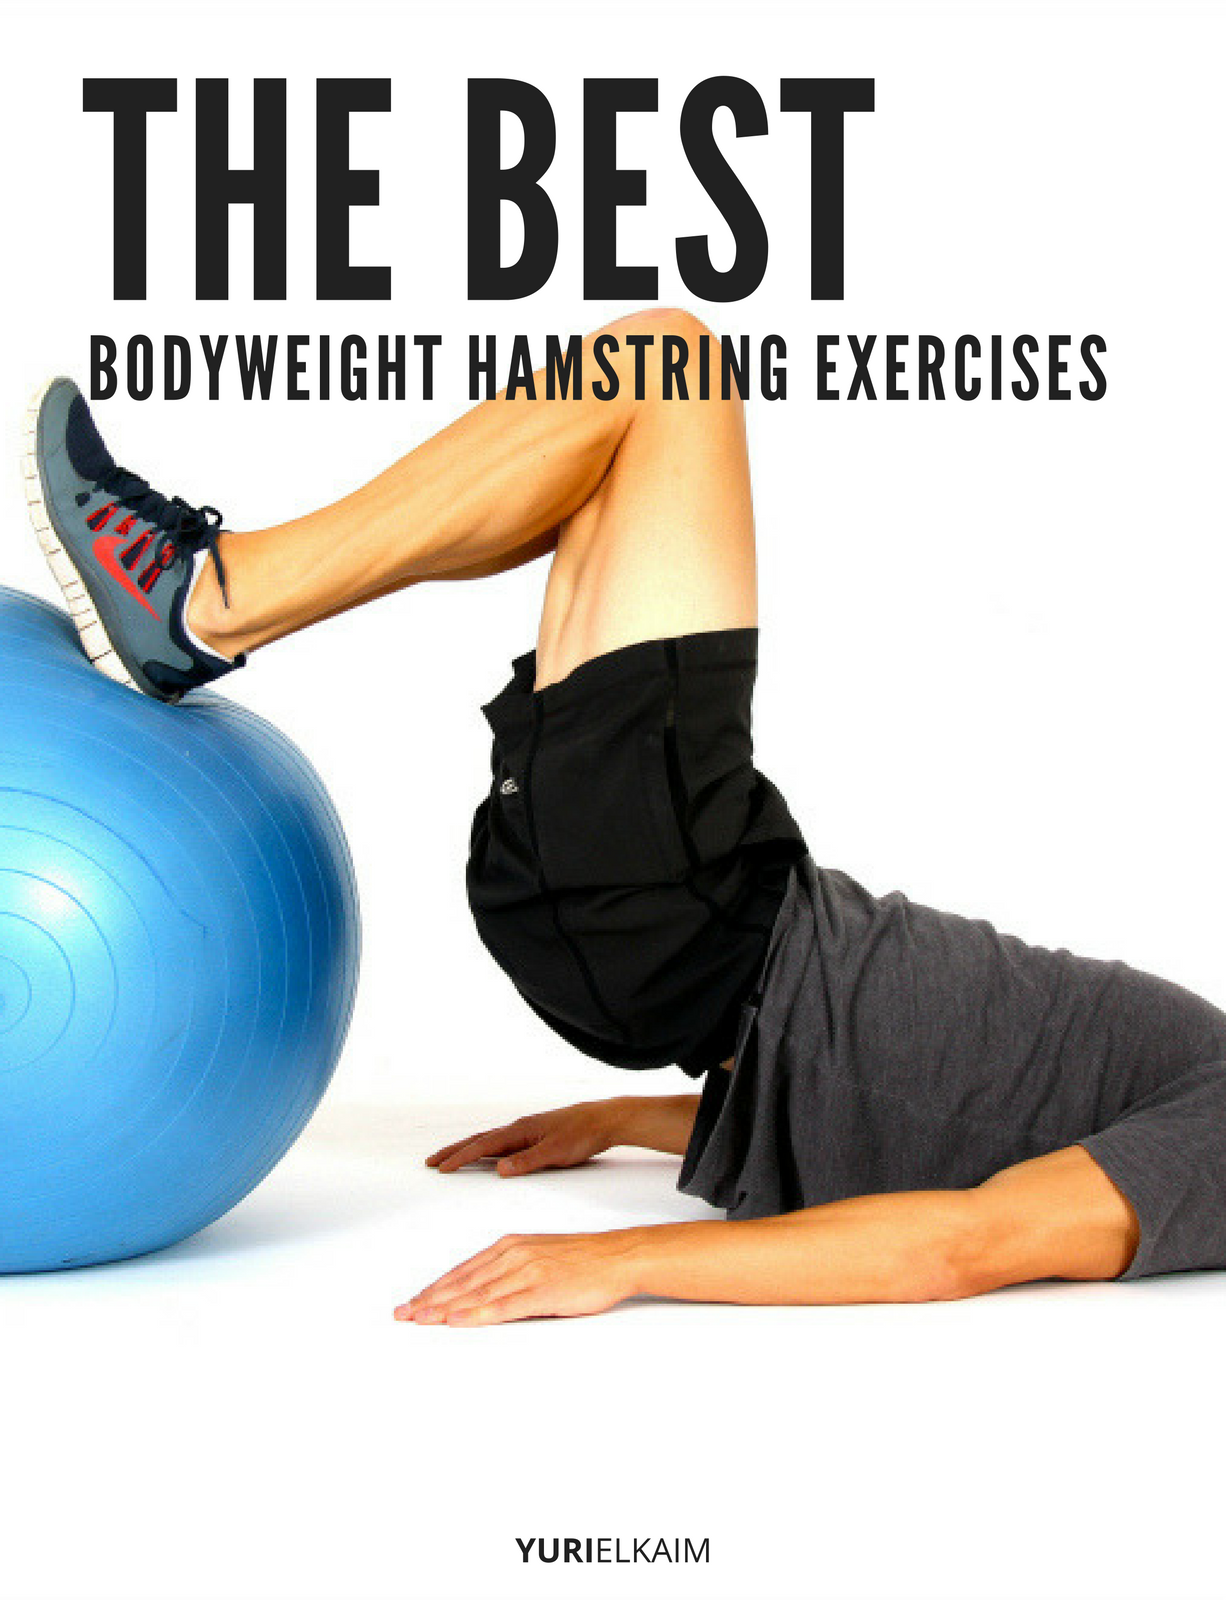 The Ultimate Cheatsheet To The Best Bodyweight Hamstring